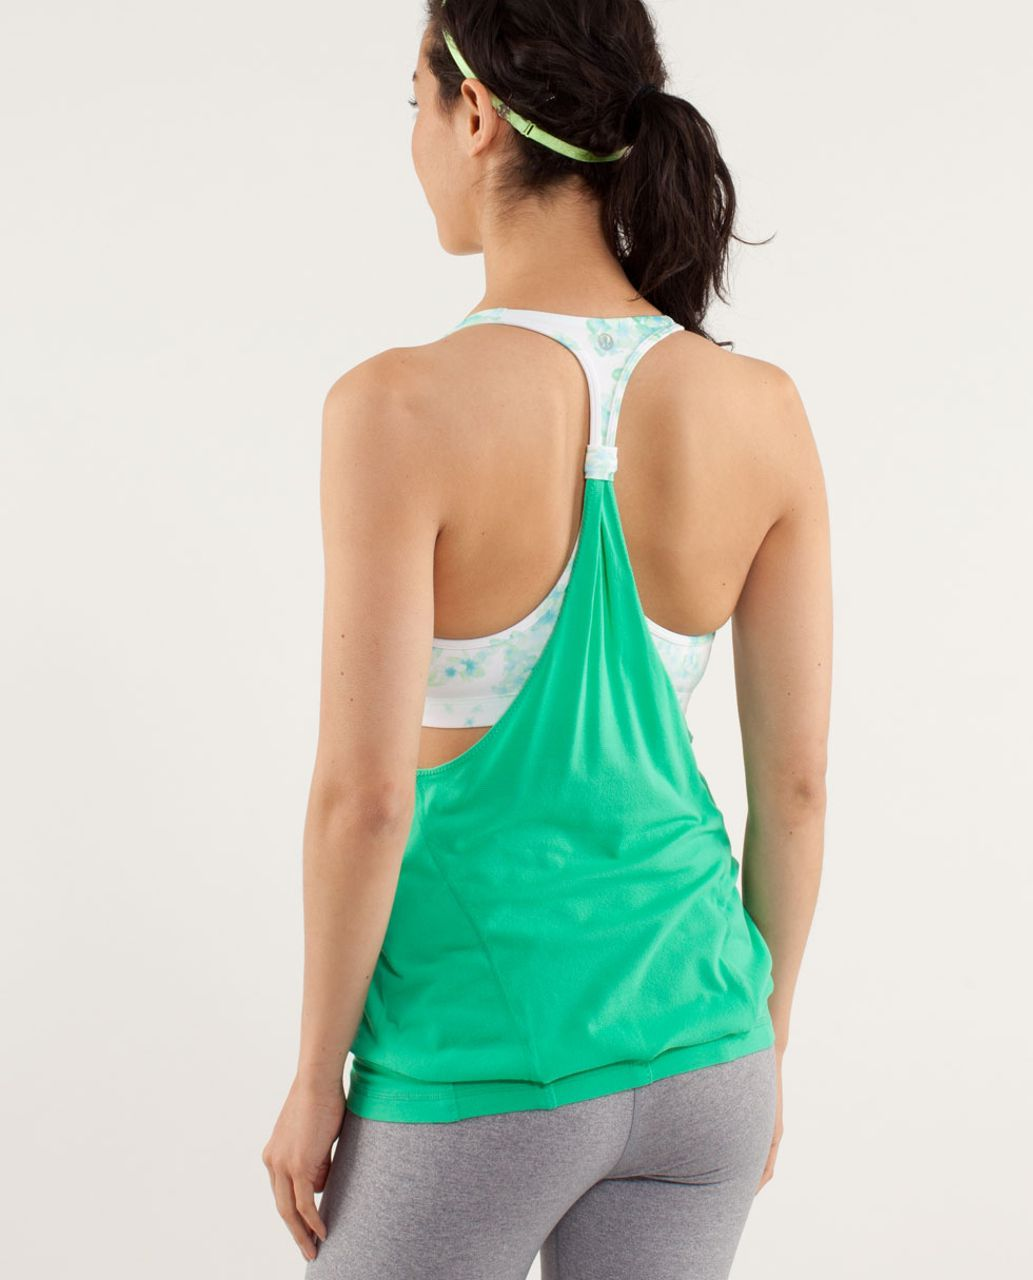 Lululemon Practice Freely Tank - Very Green / Frangipani Very Green